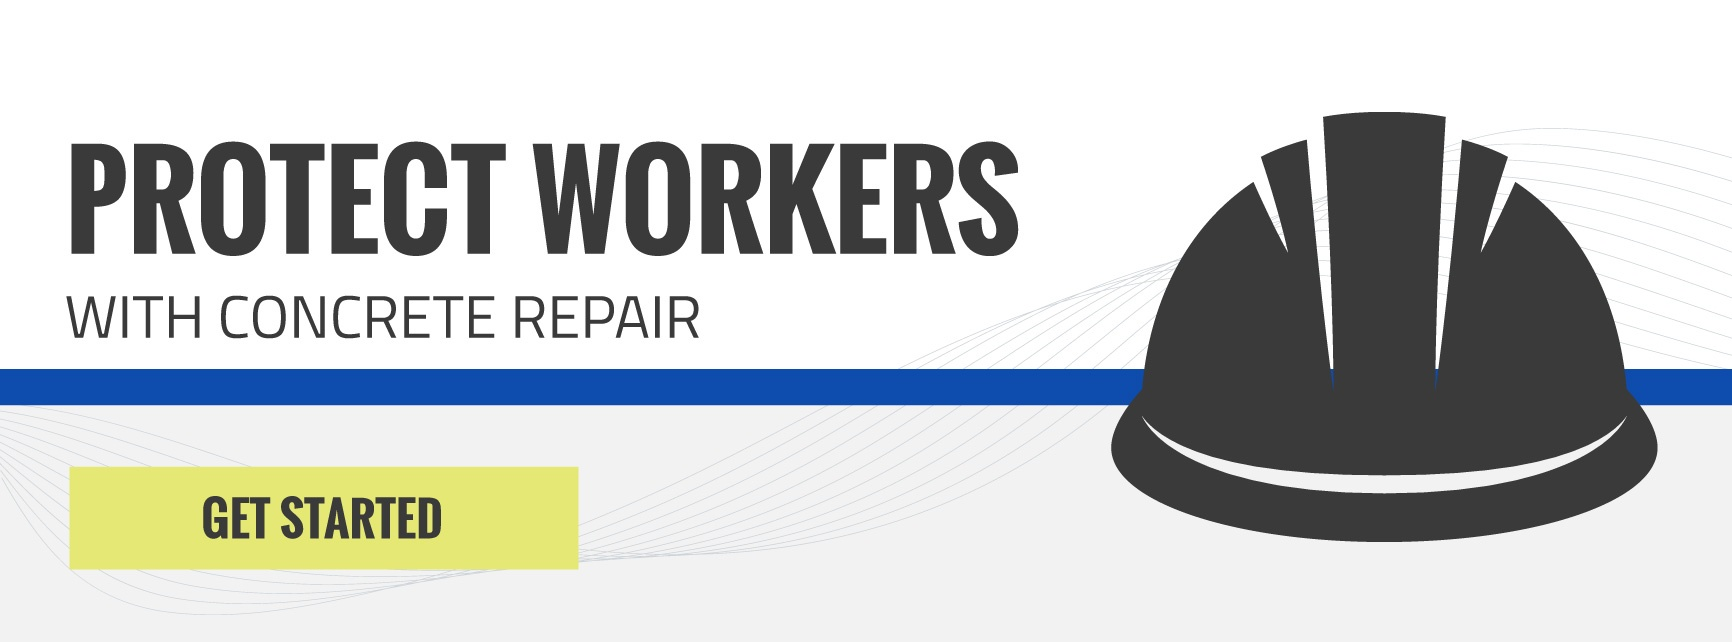 Protect workers with concrete repair